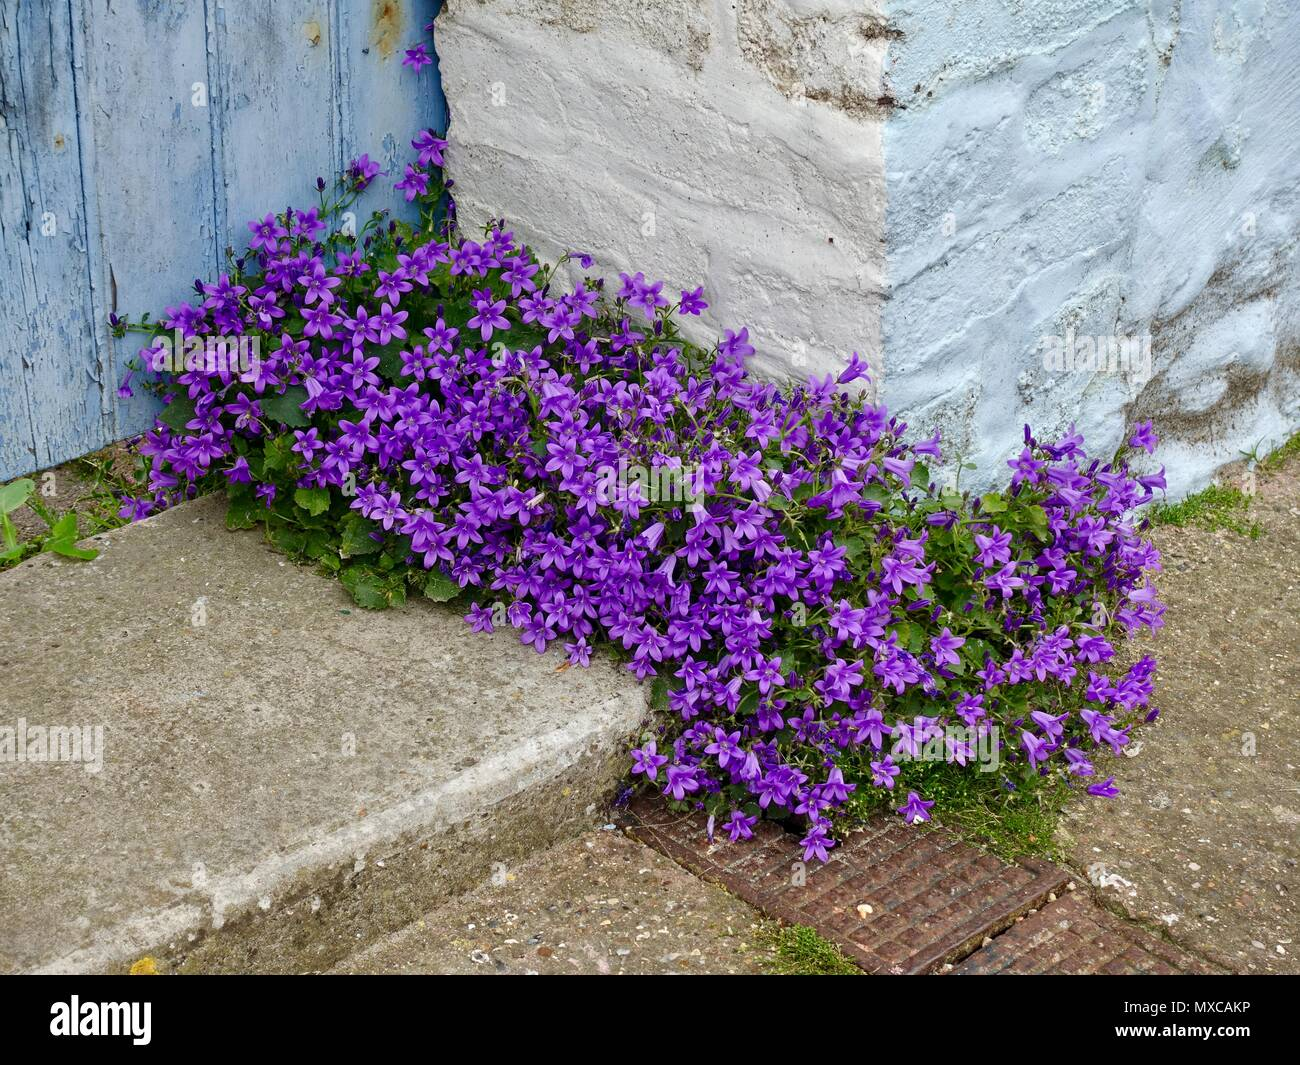 flowers-purple-MXCAKP.jpg